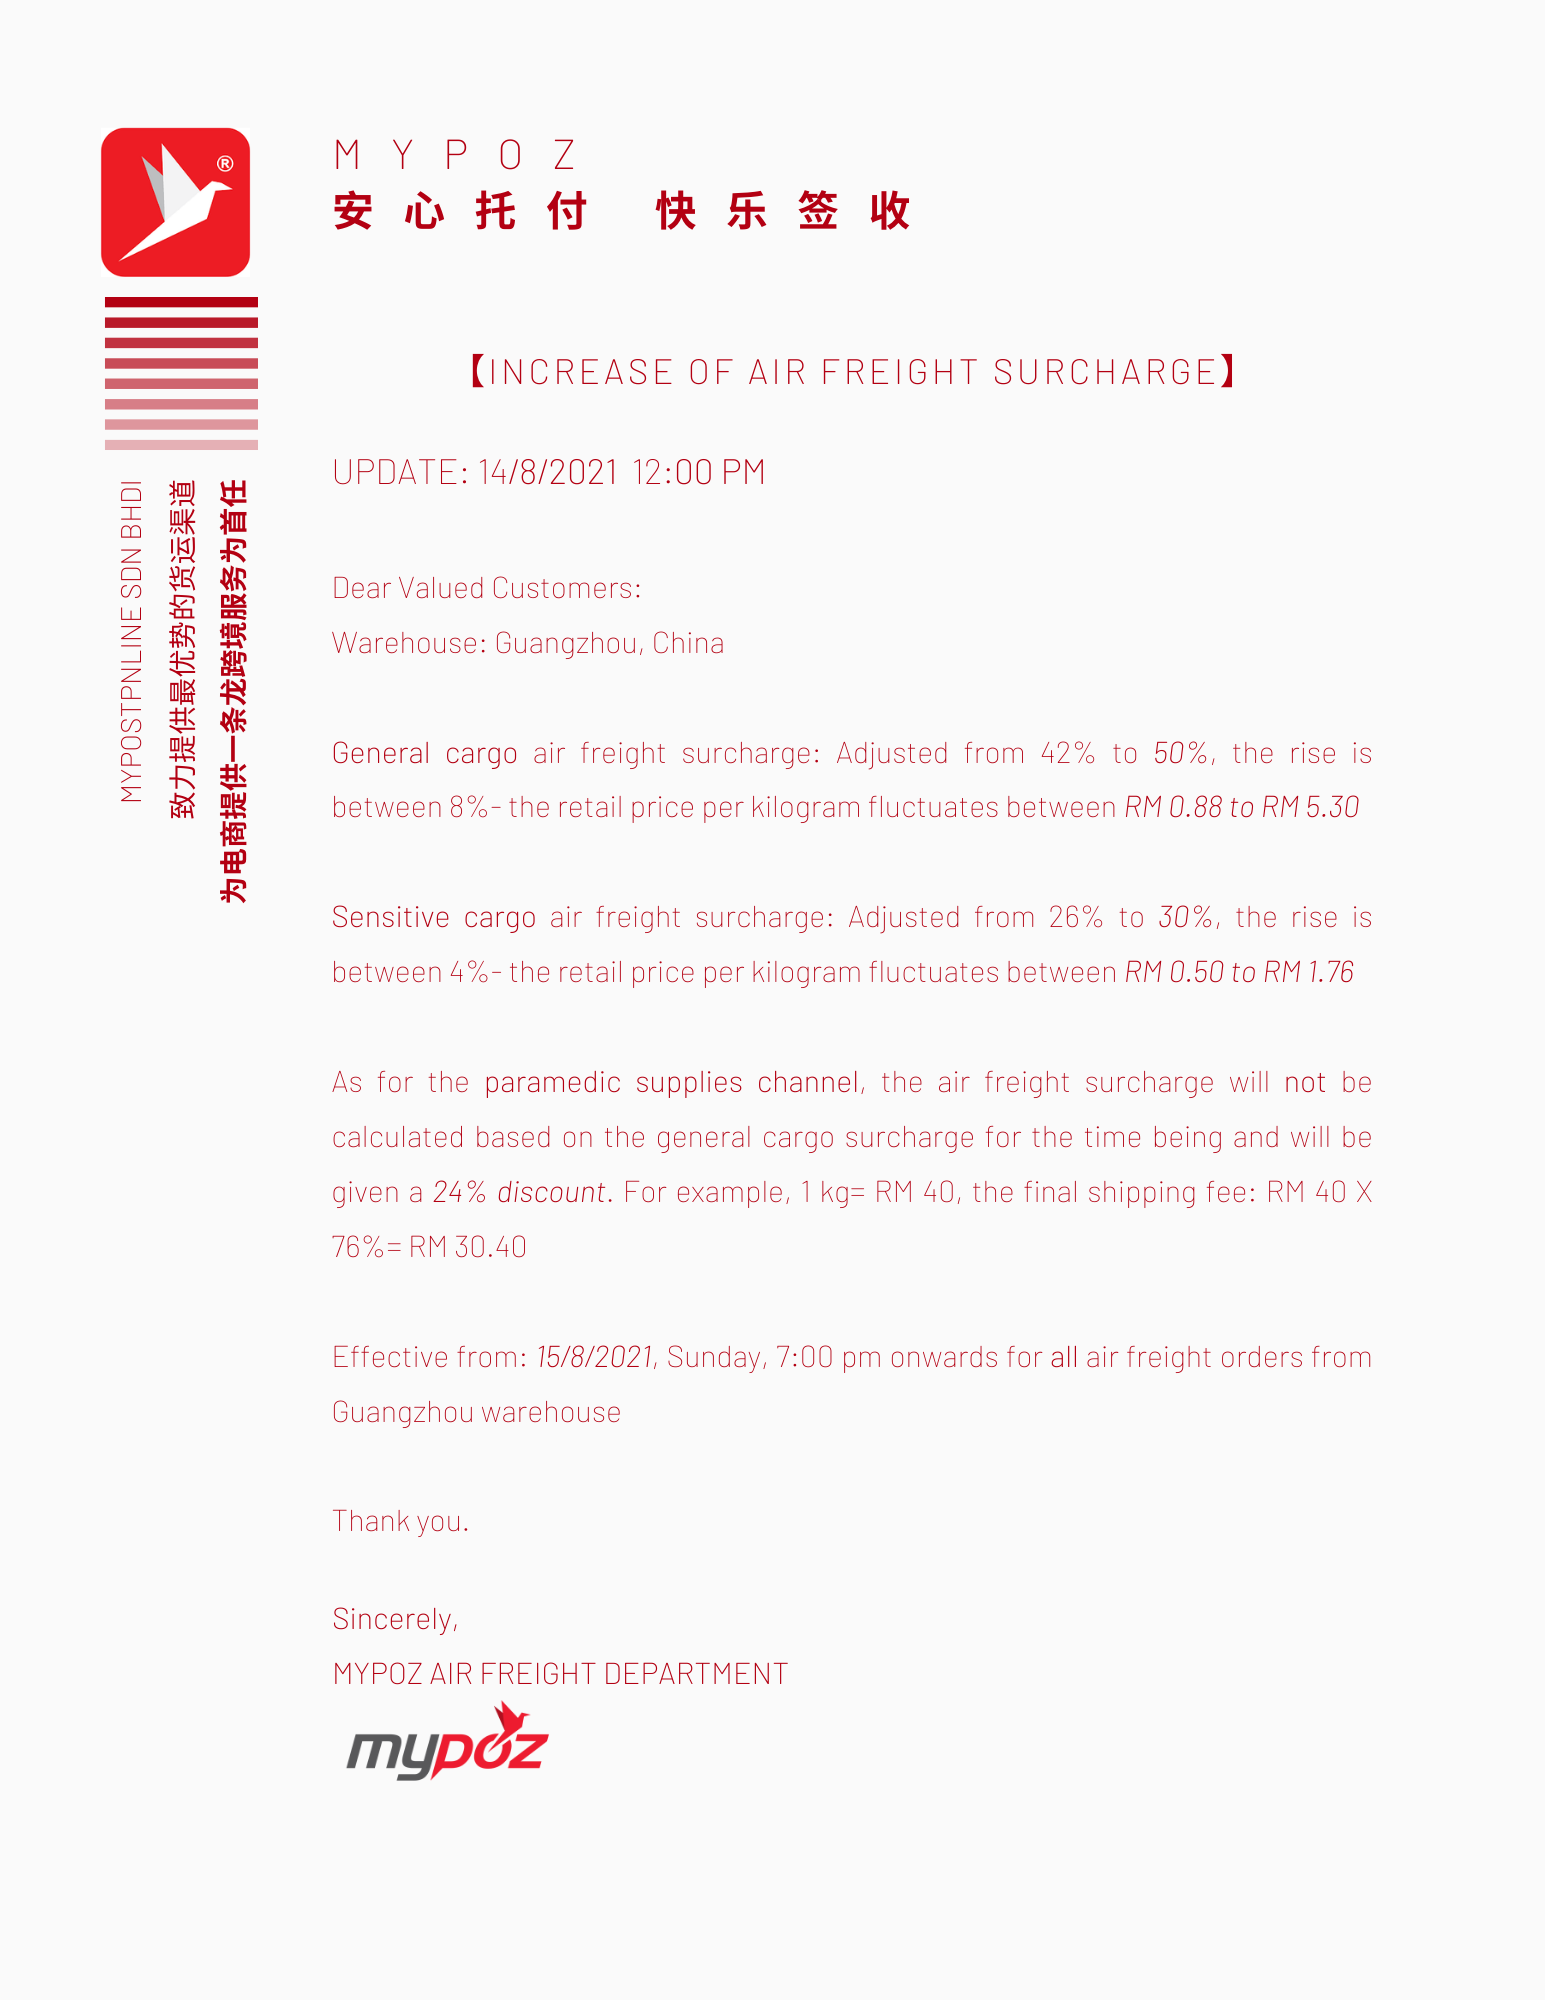 【NOTICE】INCREASE OF AIR FREIGHT SURCHARGE